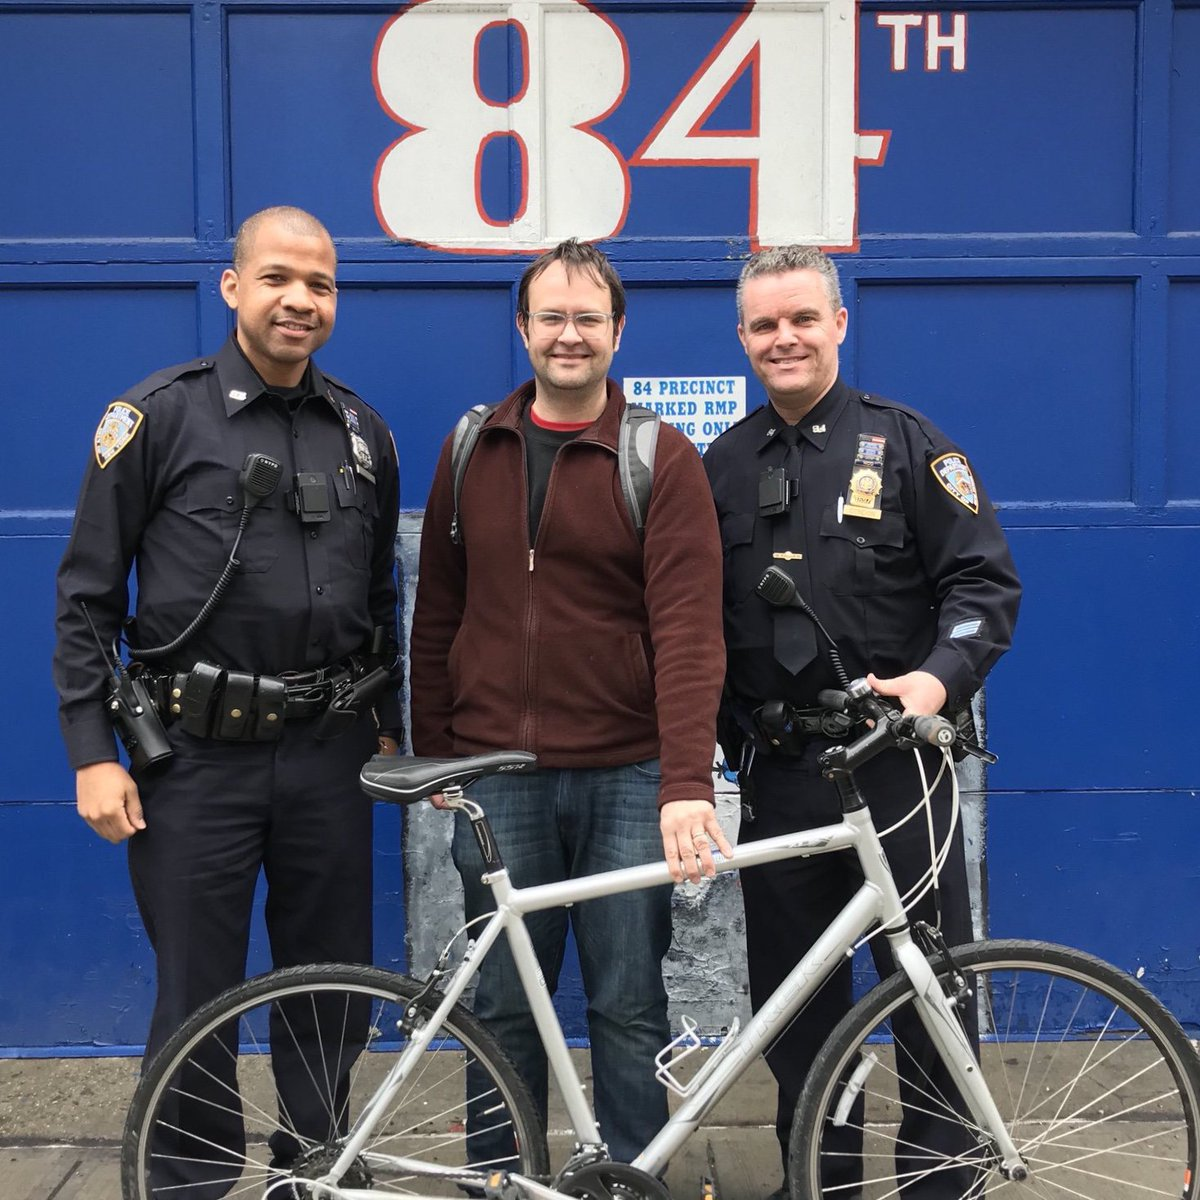 Neighborhood Coordination Officer Hunt and Detective Condon from the @NYPD84Pct apprehended a serial bicycle thief in Brooklyn. After a thorough investigation and help from local bike shops, they were able to locate the owner of this stolen 🚲 and reunite him with his property!